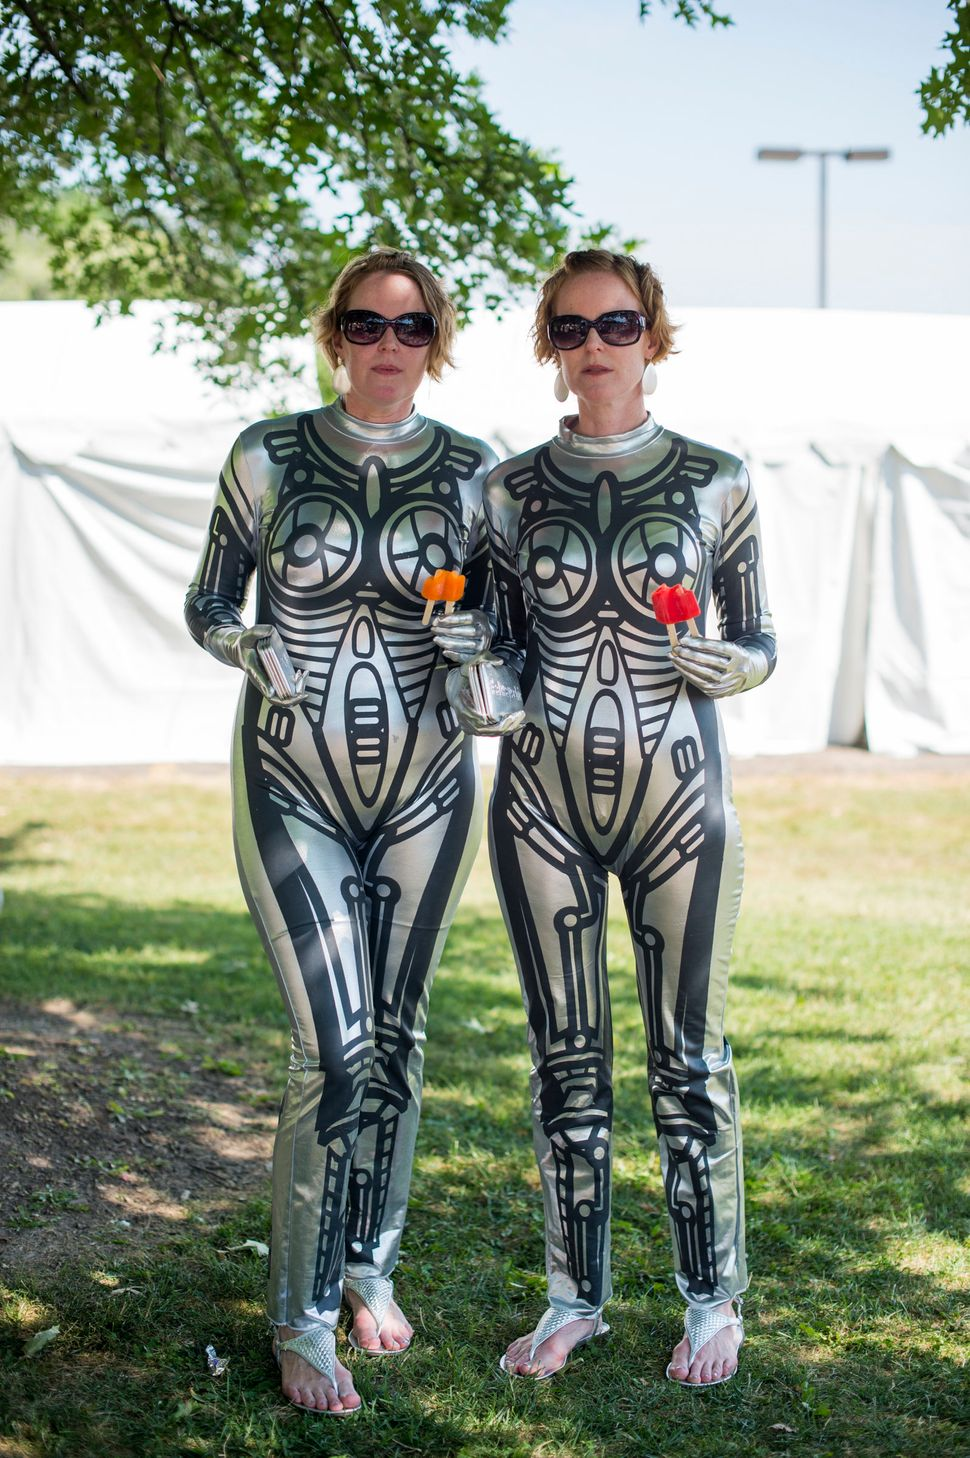 Heather and Tara Kelly, 42, pose dressed as robots during the Twins Days Festival. Heather is from Berkeley, California, whil